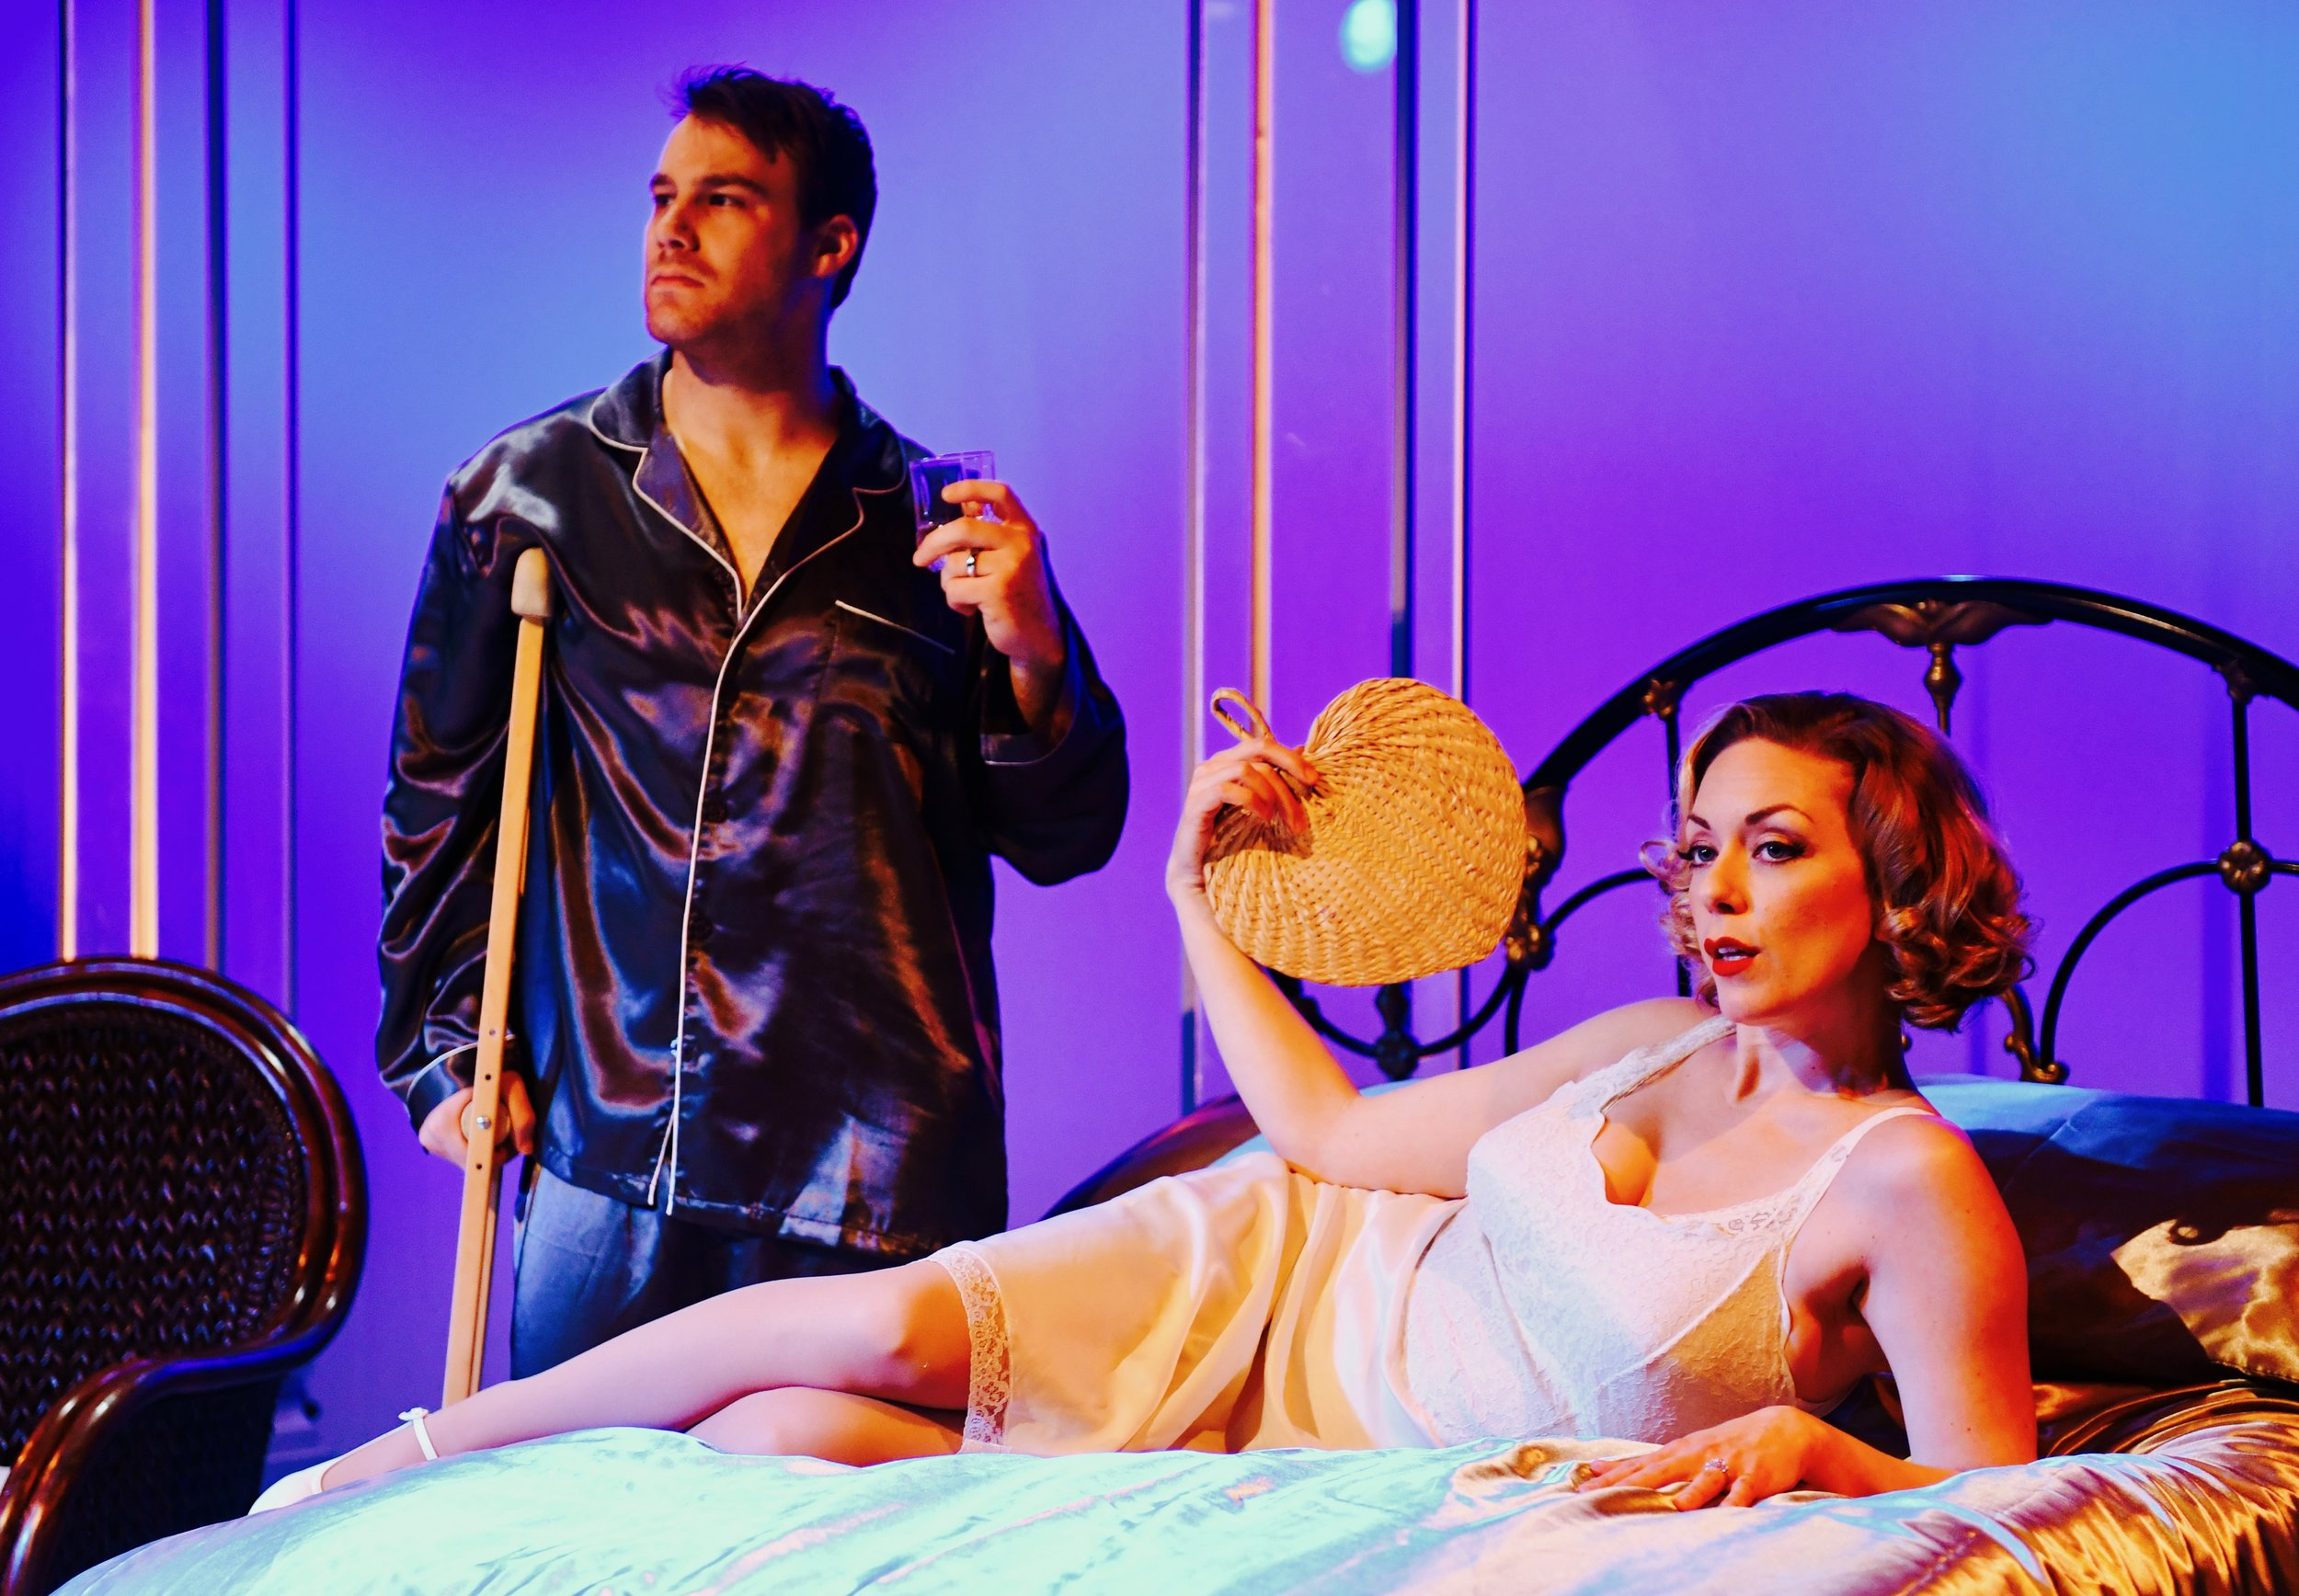 ROB AUGUST* as Brick and ALLISON F. RICH* as Maggie in San Jose Stage Company's CAT ON A HOT TIN ROOF by Tennessee Williams Photo by Dave Lepori *Members of Actors' Equity Association.